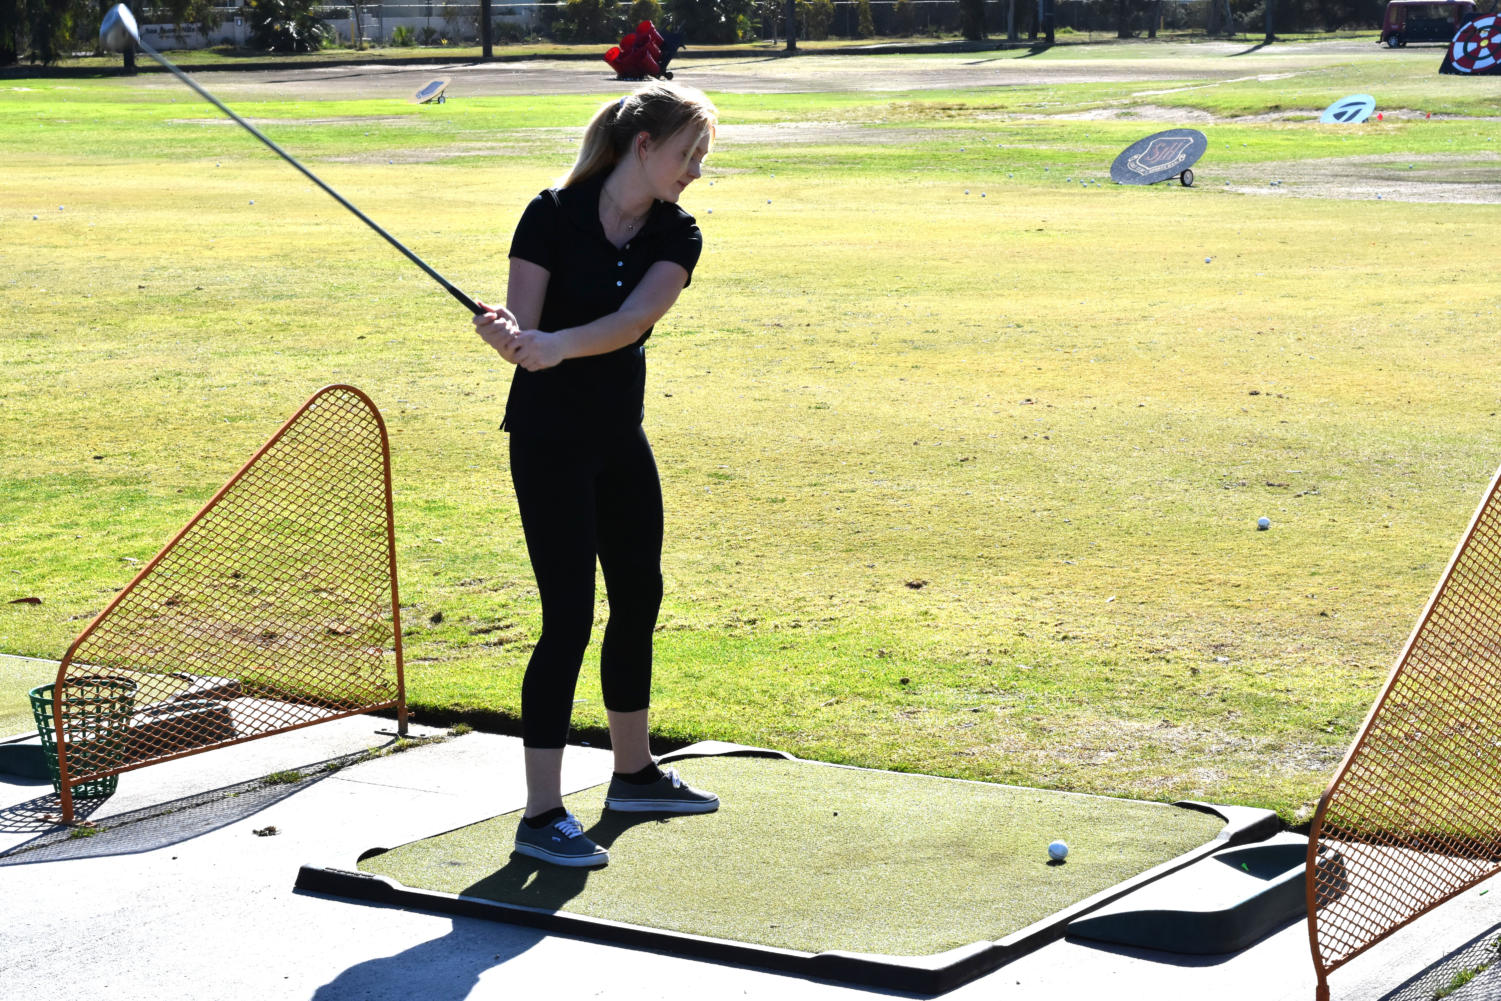 The girls practiced four to five days a week during their season at the golf range off campus. They play at the San Juan Golf Club.